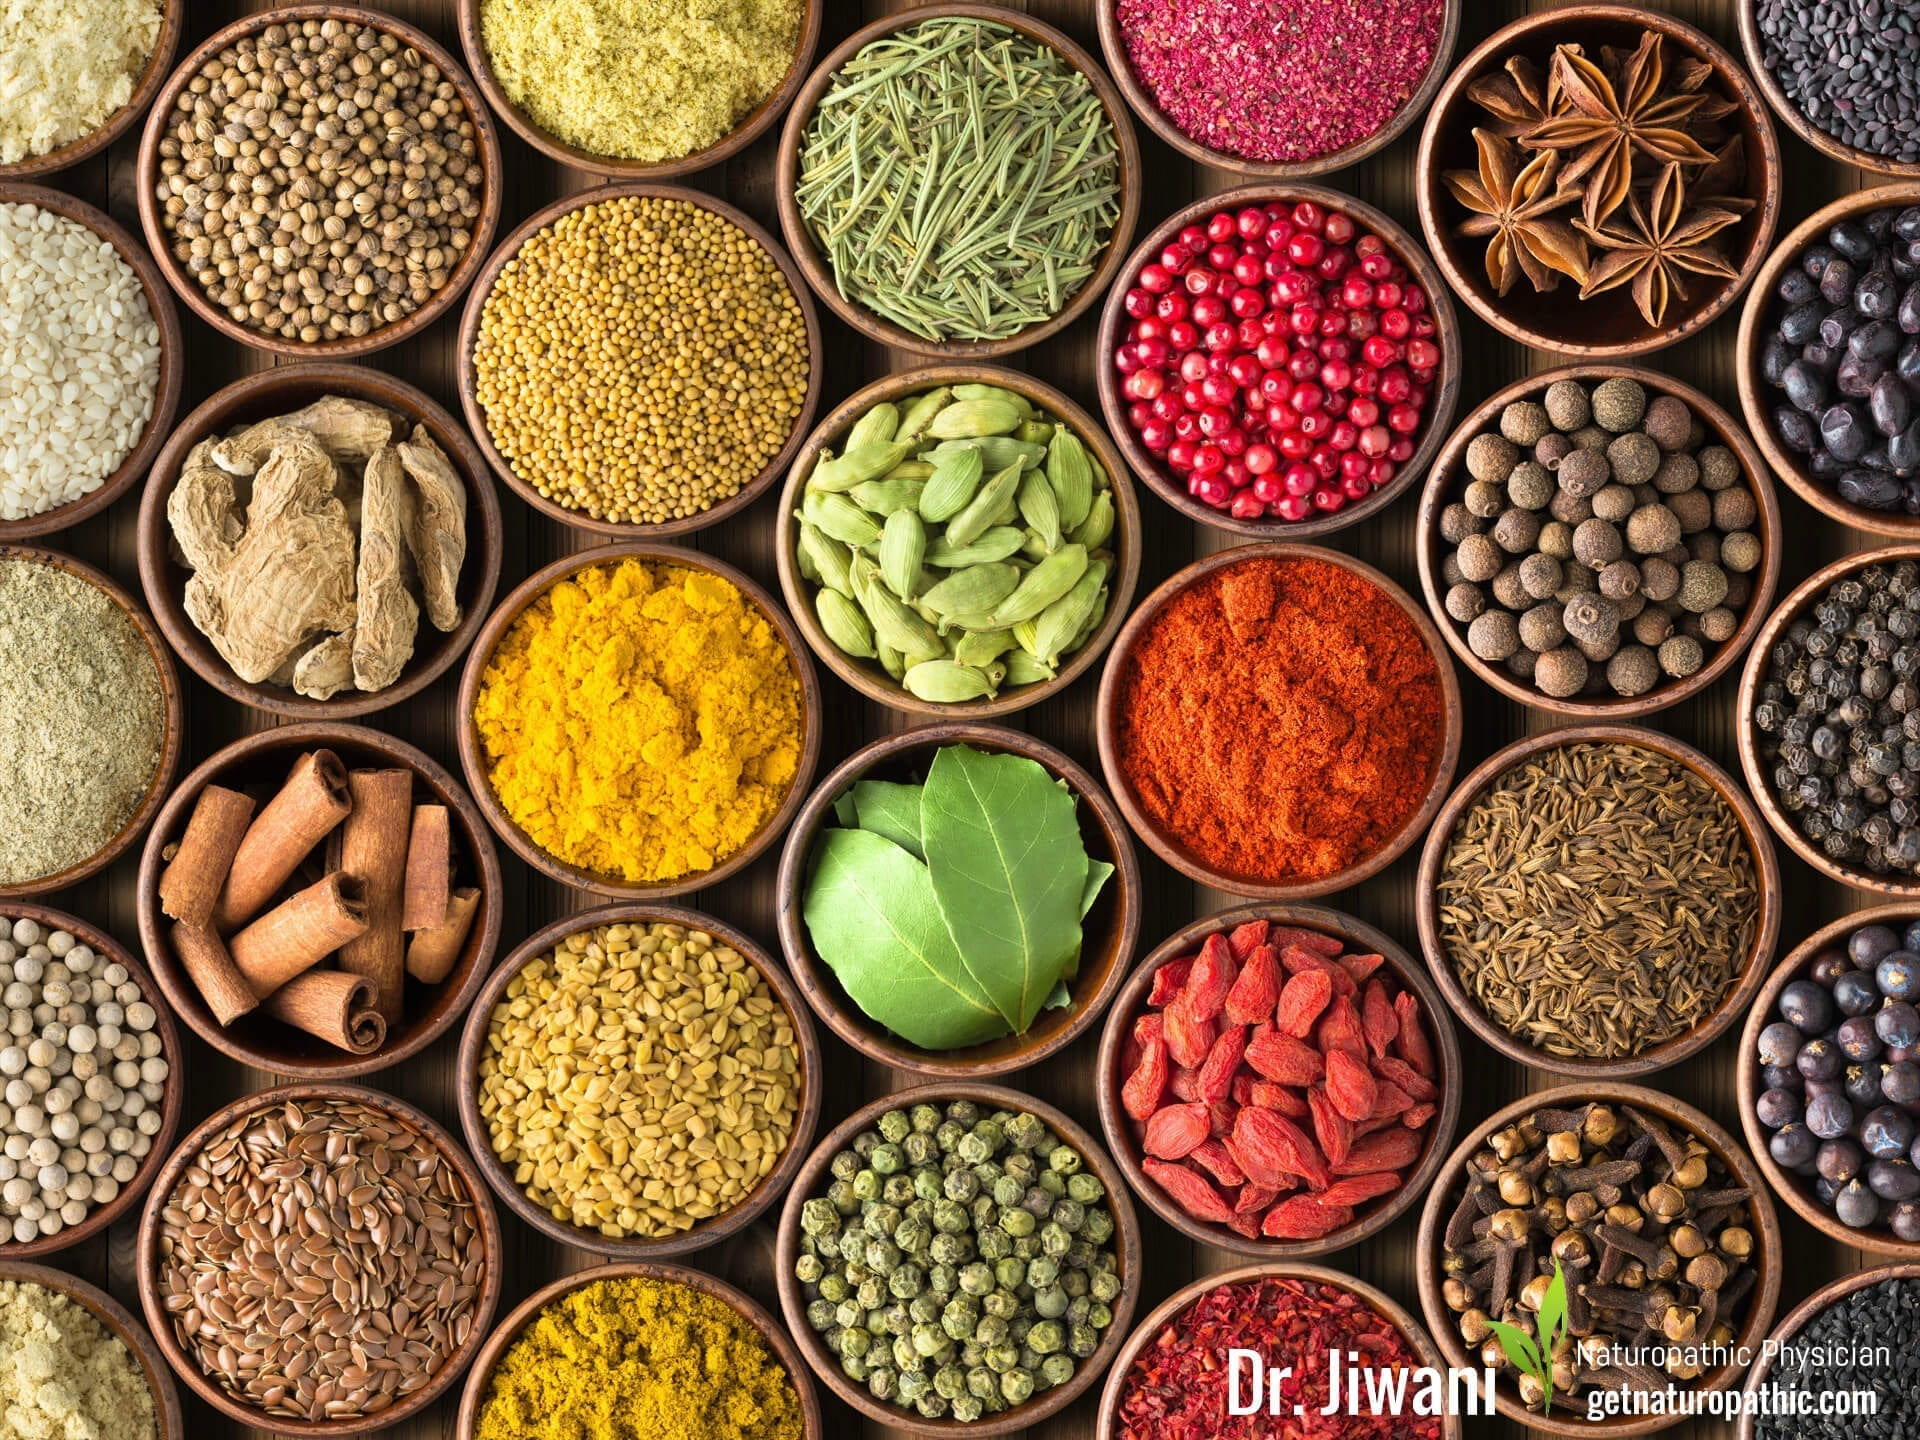 Dr. Jiwani The Keto Diet Food List for Food Allergies* | Dr. Jiwani's Naturopathic Nuggets Blog